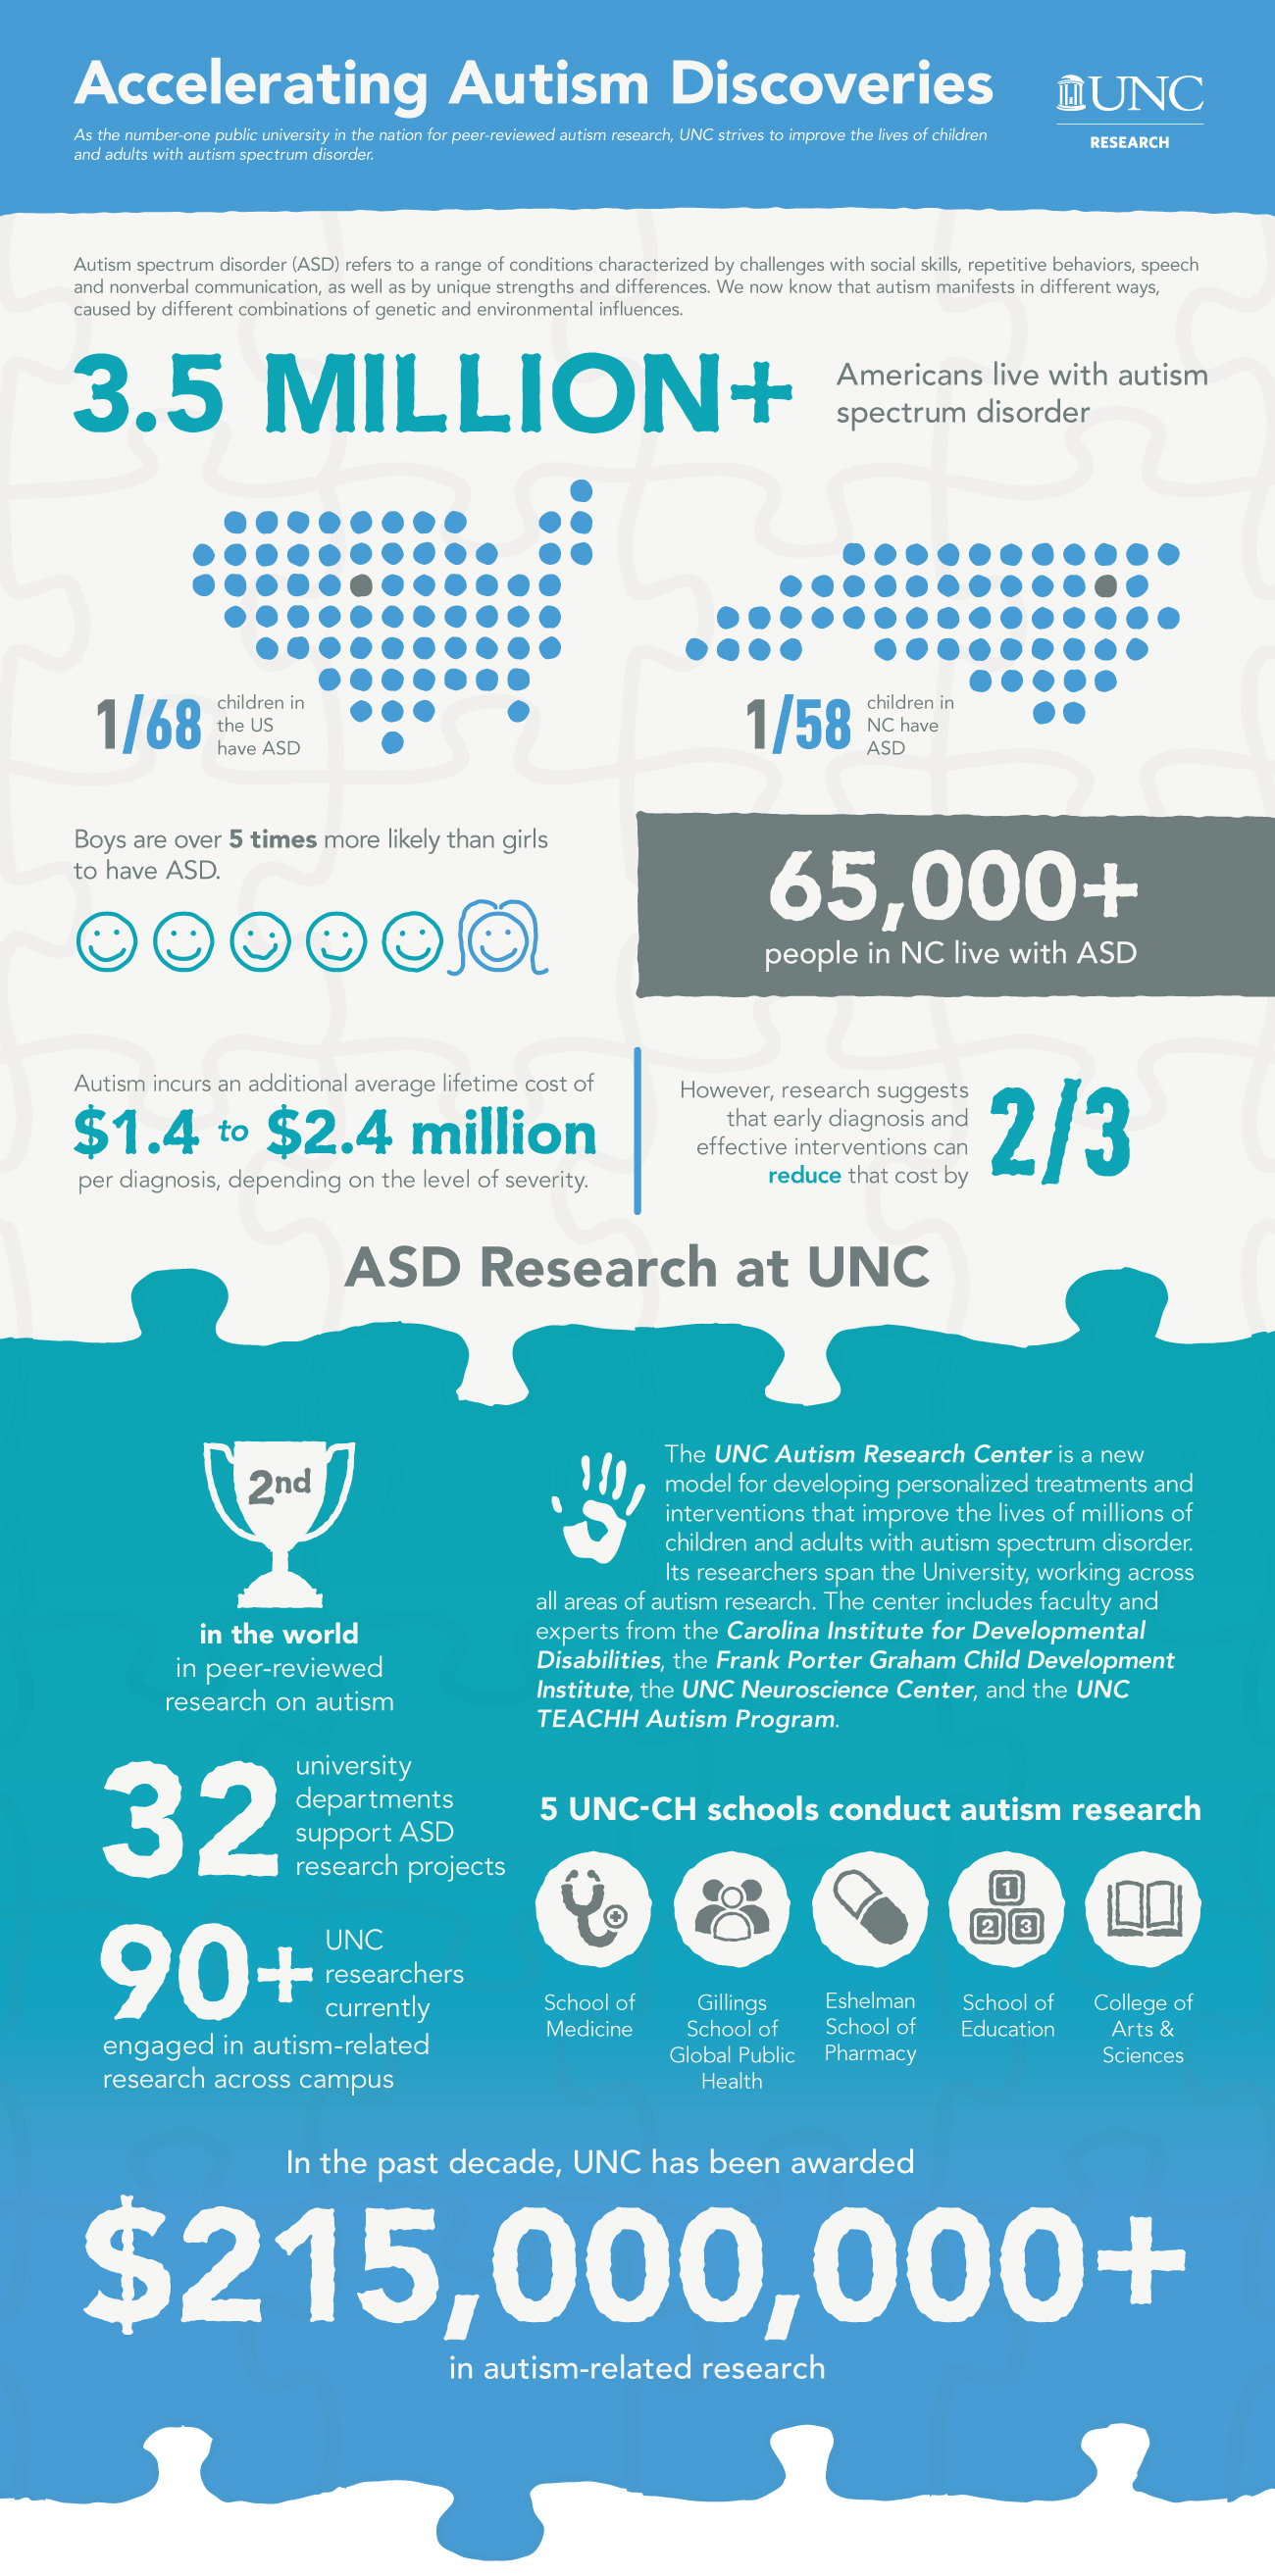 "UNC Autism Research Infographic titled ""Accelerating Autism Discoveries."" As the number-one public university in the nation for peer-reviewed autism research, UNC strives to improve the lives of children and adults with autism spectrum disorder. Autism spectrum disorder ( also known as ASD) refers to a range of conditions characterized by challenges with social skills, repetitive behaviors, speech and nonverbal communication, as well as by unique strengths and differences. We now know that autism manifests in different ways, caused by different combinations of genetic and environmental influences. 3.5 million plus Americans live with autism spectrum disorder. 1 in 68 children in the US have ASD. 1 in 58 children in North Carolina have ASD. Boy are over 5 times more likely than girls to have ASD. 65,000 plus people in North Carolina live with ASD. Autism incurs an additional average lifetime cost of 1.4 million to 2.4 million dollars per per diagnosis, depending on the level of severity. However, research suggests that early diagnosis and effective interventions can reduce that cost by two-thirds. New section, ""ASD Research at UNC."" UNC is second in the world in peer-reviewed research on autism. 32 university departments support ASD research projects at UNC. 90 plus UNC researchers are currently engaged in autism-related research across campus. The UNC Autism Research Center is a new model for developing personalized treatments and interventions that improve the lives of millions of children and adults with autism spectrum disorder. Its researchers span the University, working across all areas of autism research. The center includes: the Carolina Institute for Developmental Disabilities, the Frank Porter Graham Child Development Institute, the UNC Neuroscience Center, and the UNC TEACHH Autism Program. 5 UNC-CH schools conduct autism research: The School of Medicine, Gillings School of Global Public Health, Eshelman School of Pharmacy, School of Education, and College of Arts and Sciences. In the past decade, UNC has been awarded over 215 million dollars in autism-related research."